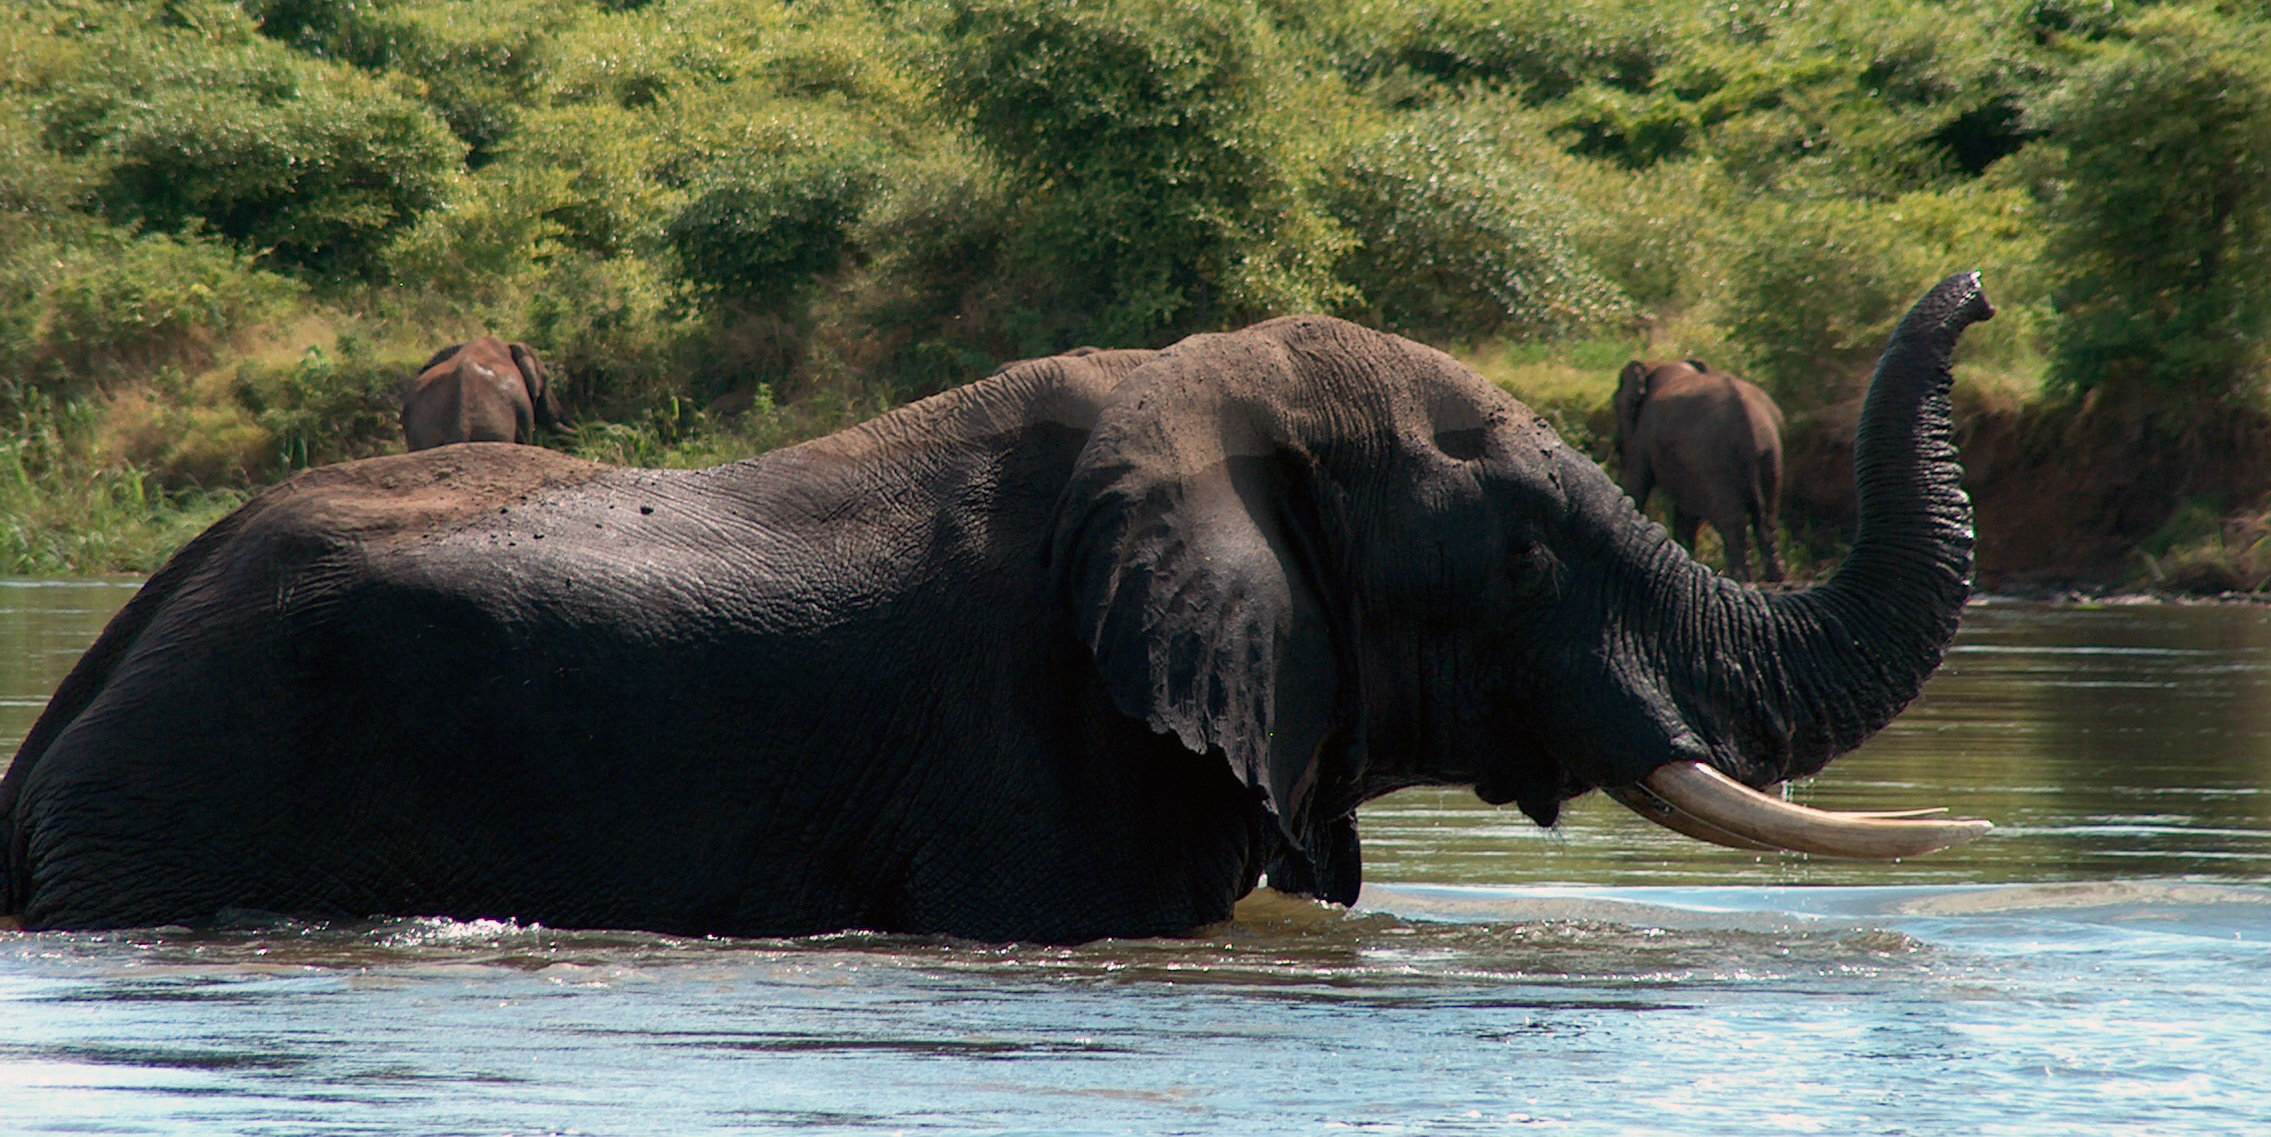 An elephant wades through water in Zambia. By taking part in wilife conservation in Africa, participants could help to conserve species like this.